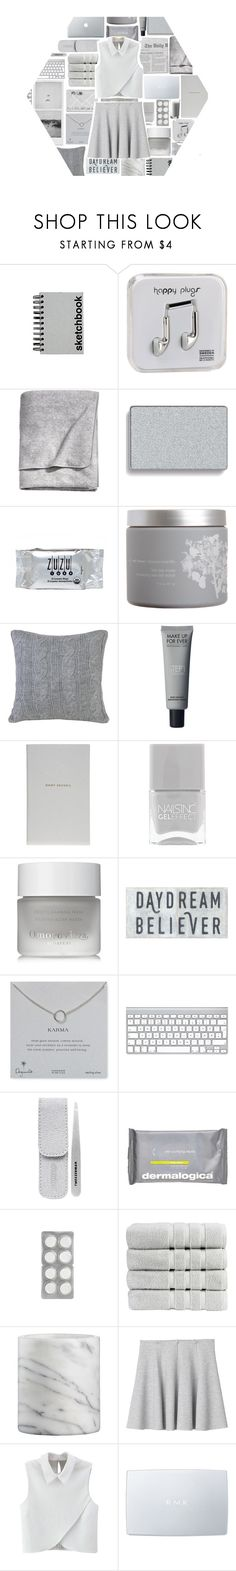 """""""grey"""" by idonthavebrains ❤ liked on Polyvore featuring Paperchase, Happy Plugs, H&M, Mary Kay, INC International Concepts, red flower, Peking Handicraft, Smythson, Nails Inc. and Omorovicza"""